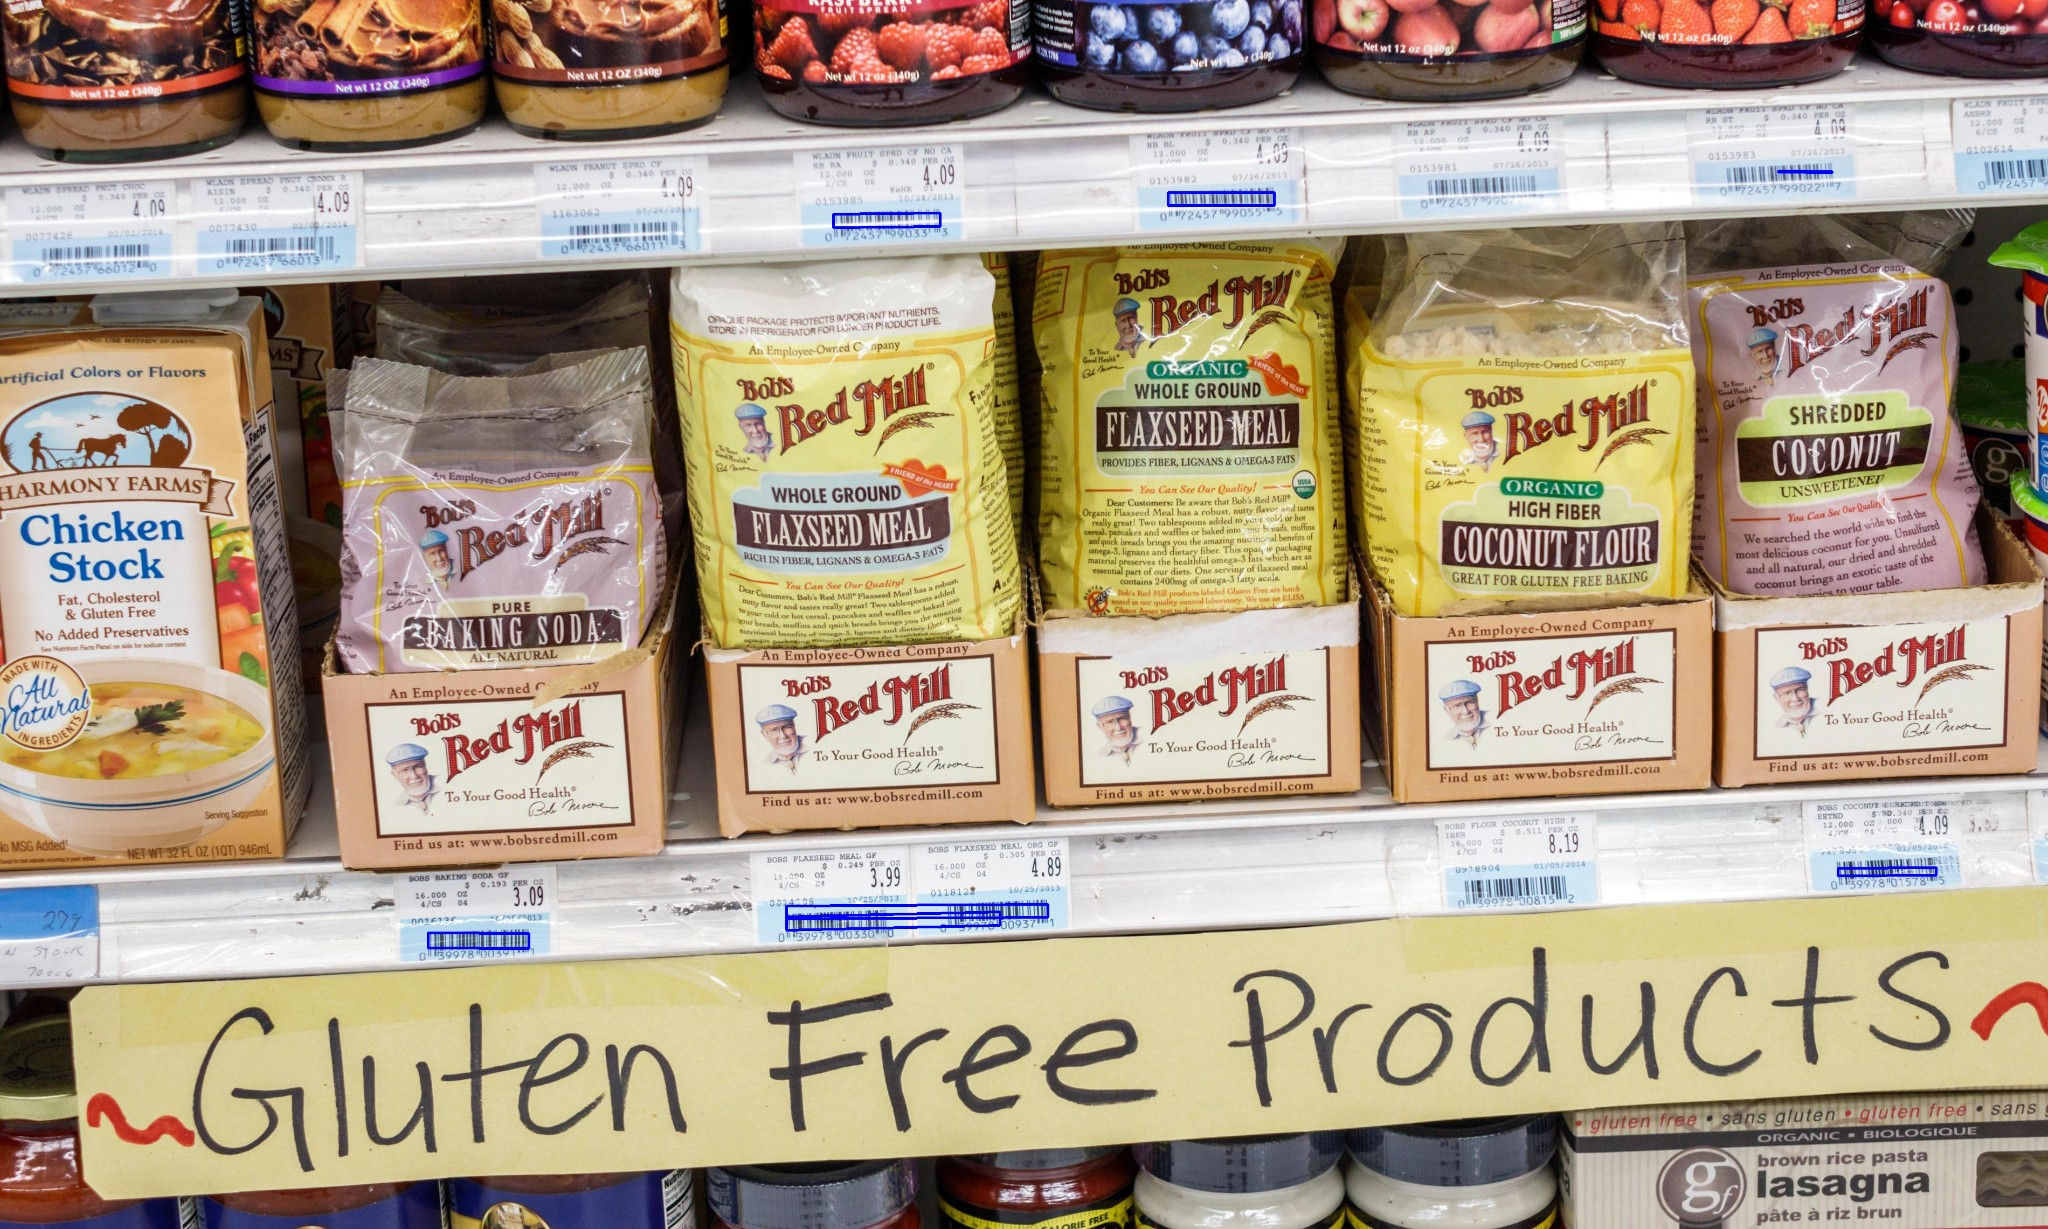 In the great gluten wars, I can't sit on the fence